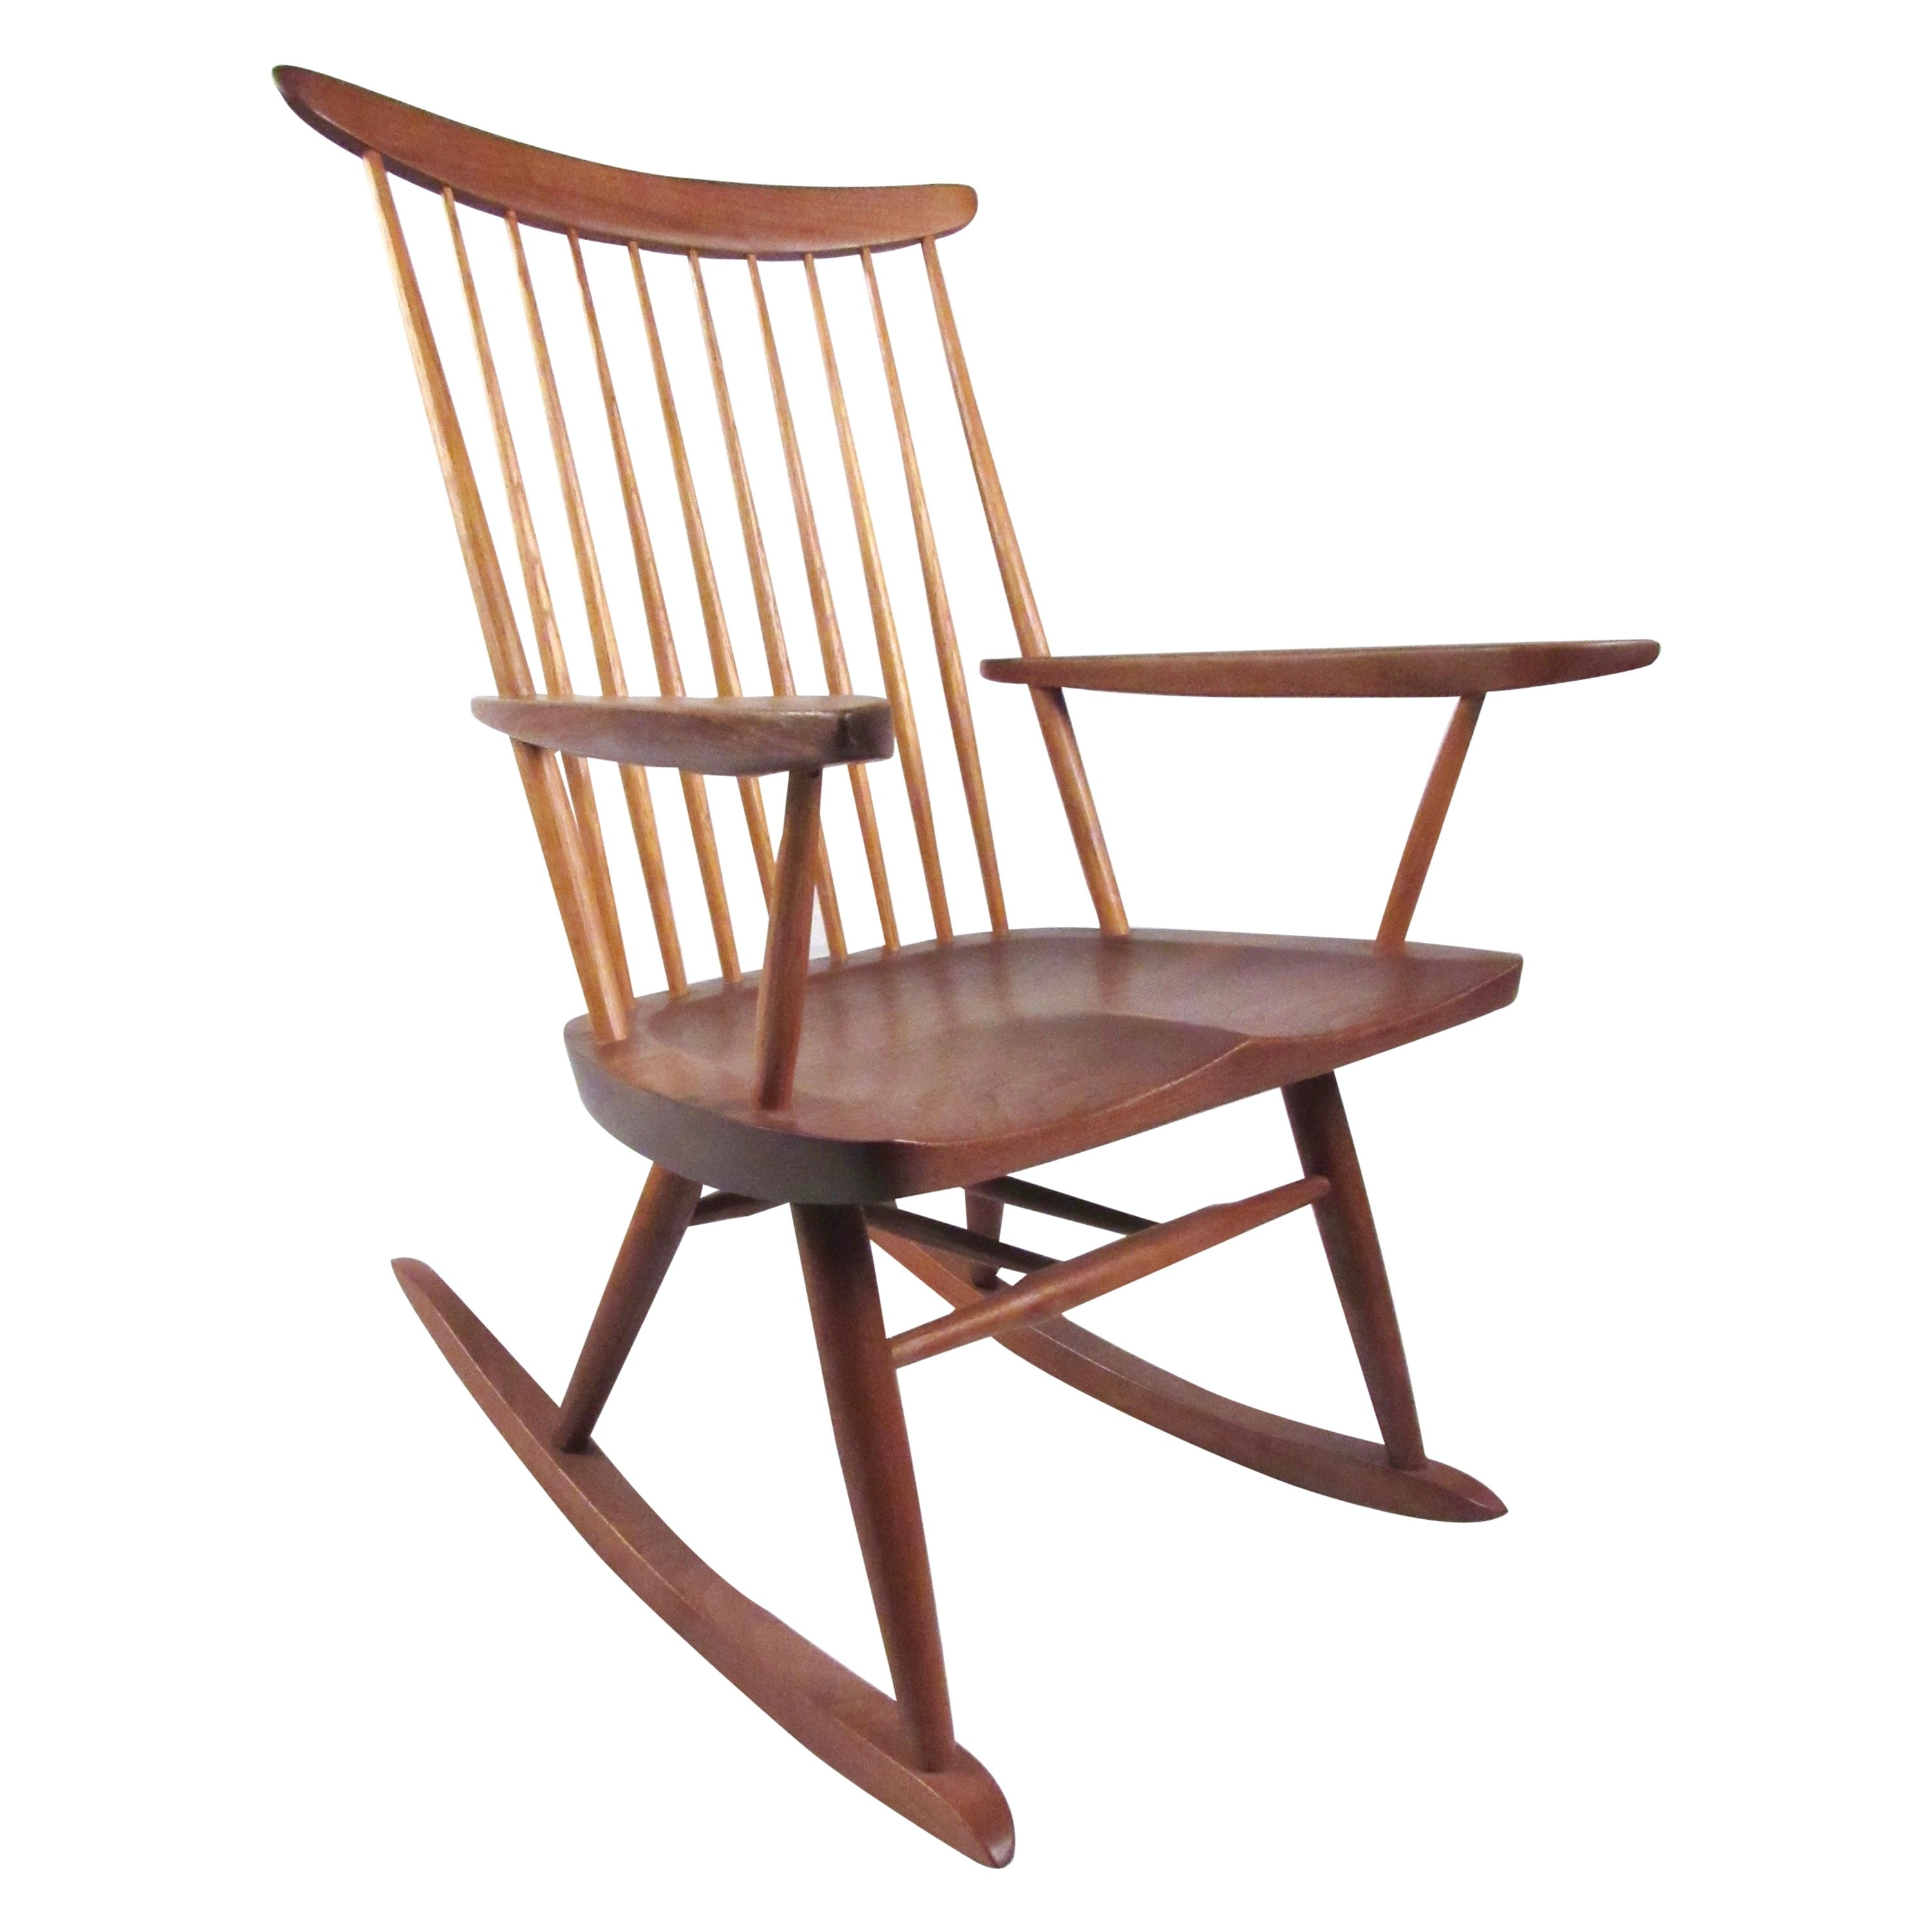 Rocking Chair With Free Edge Armgeorge Nakashima For Sale At 1Stdibs Within Fashionable Zen Rocking Chairs (View 8 of 15)